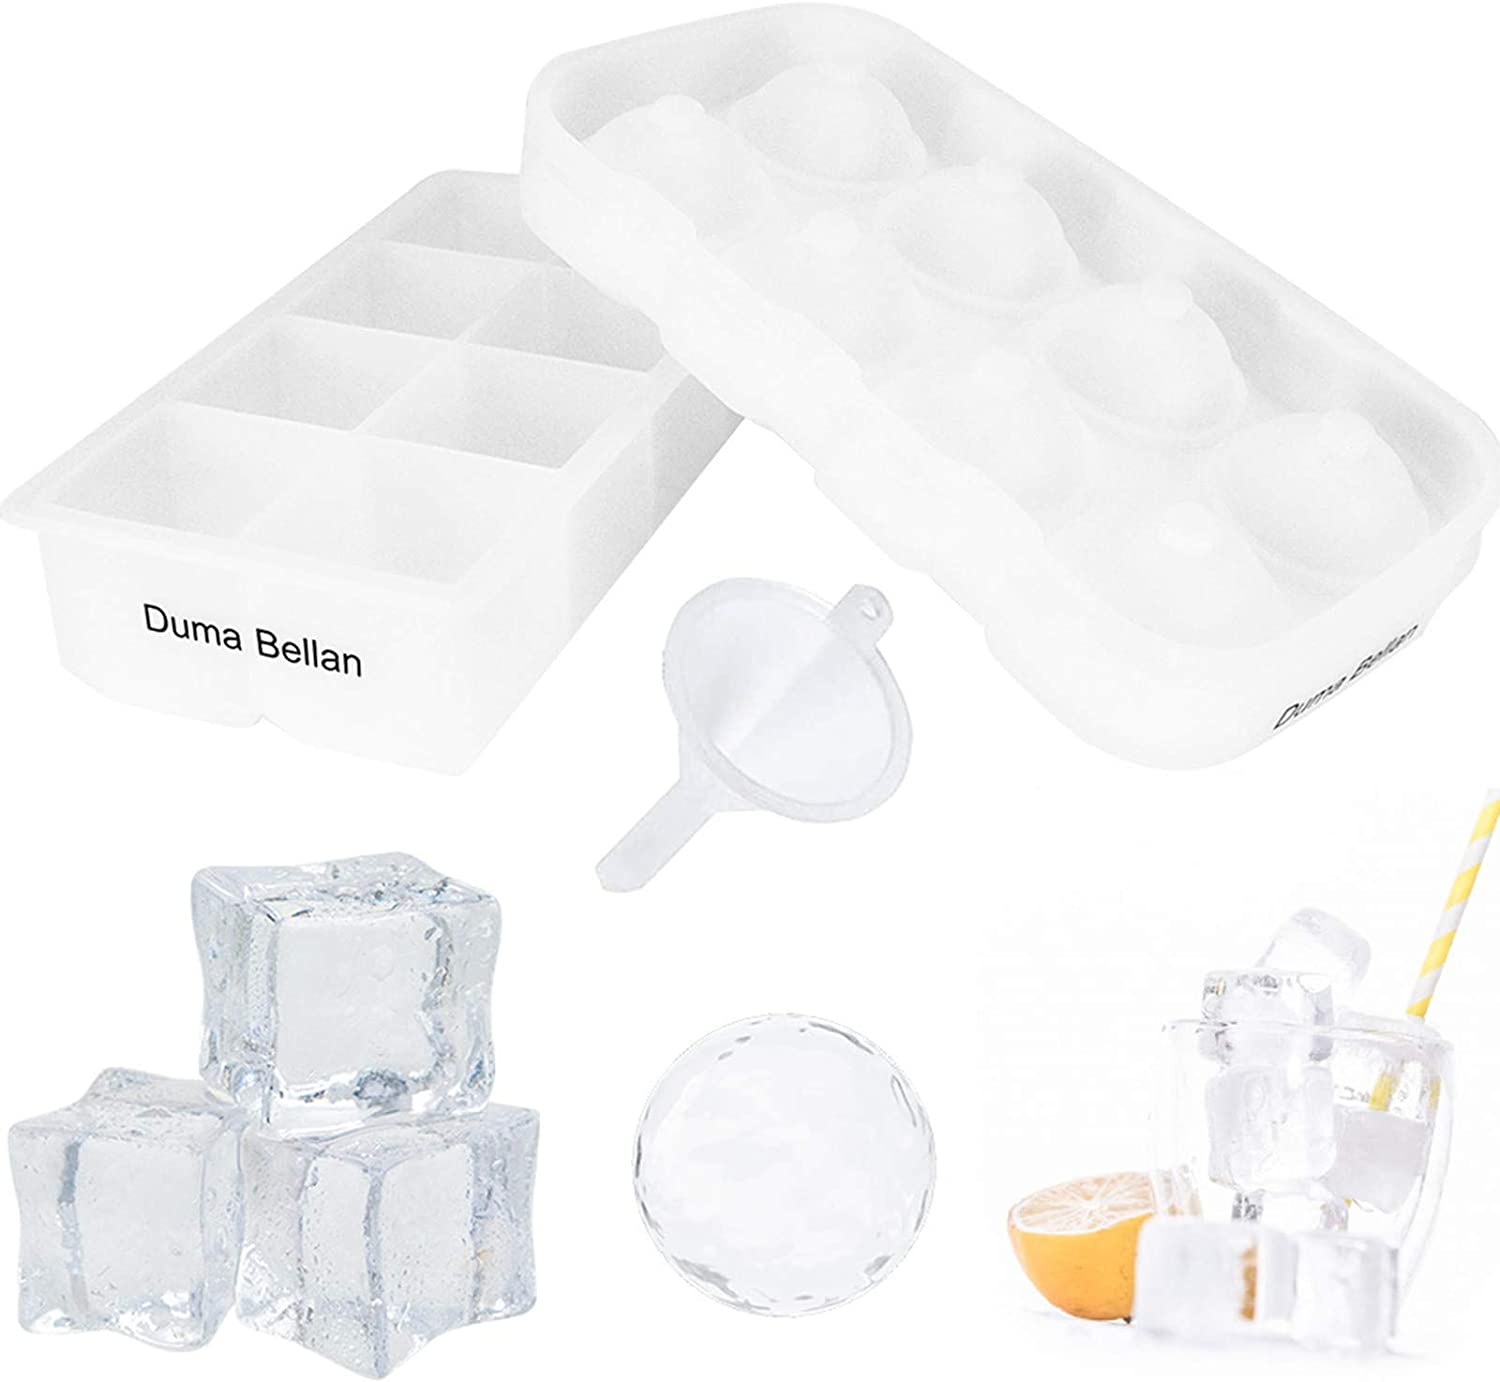 Ice Cube Tray Combination(8 Squares And 8 Balls), Large Food Grade Silicone Square Ice Cube Mold Spherical Ice Machine, Used For Cocktails And Bourbon Whiskey, Reusable And BPA Free(White)